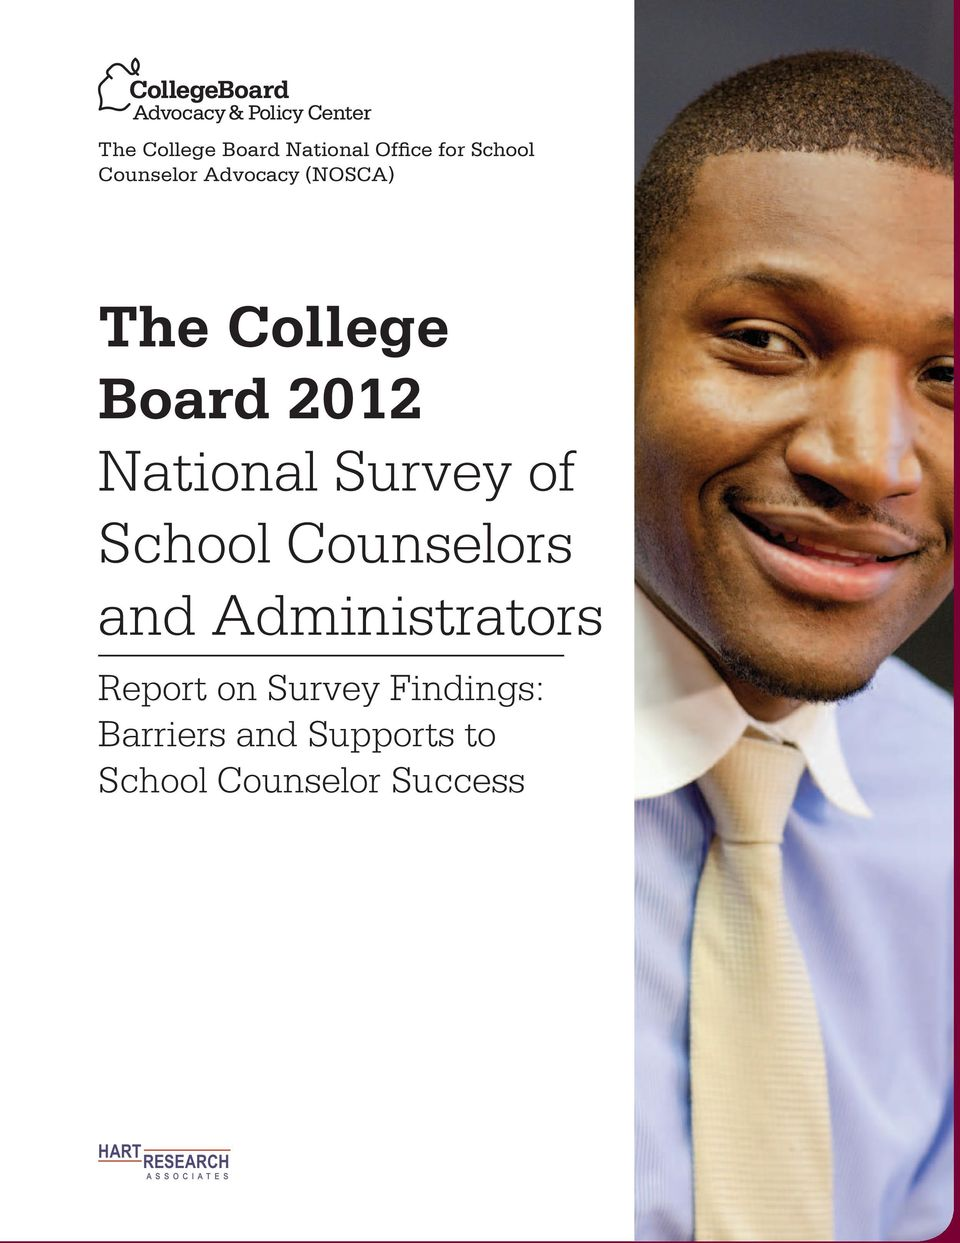 Counselors and Administrators Report on Survey Findings: